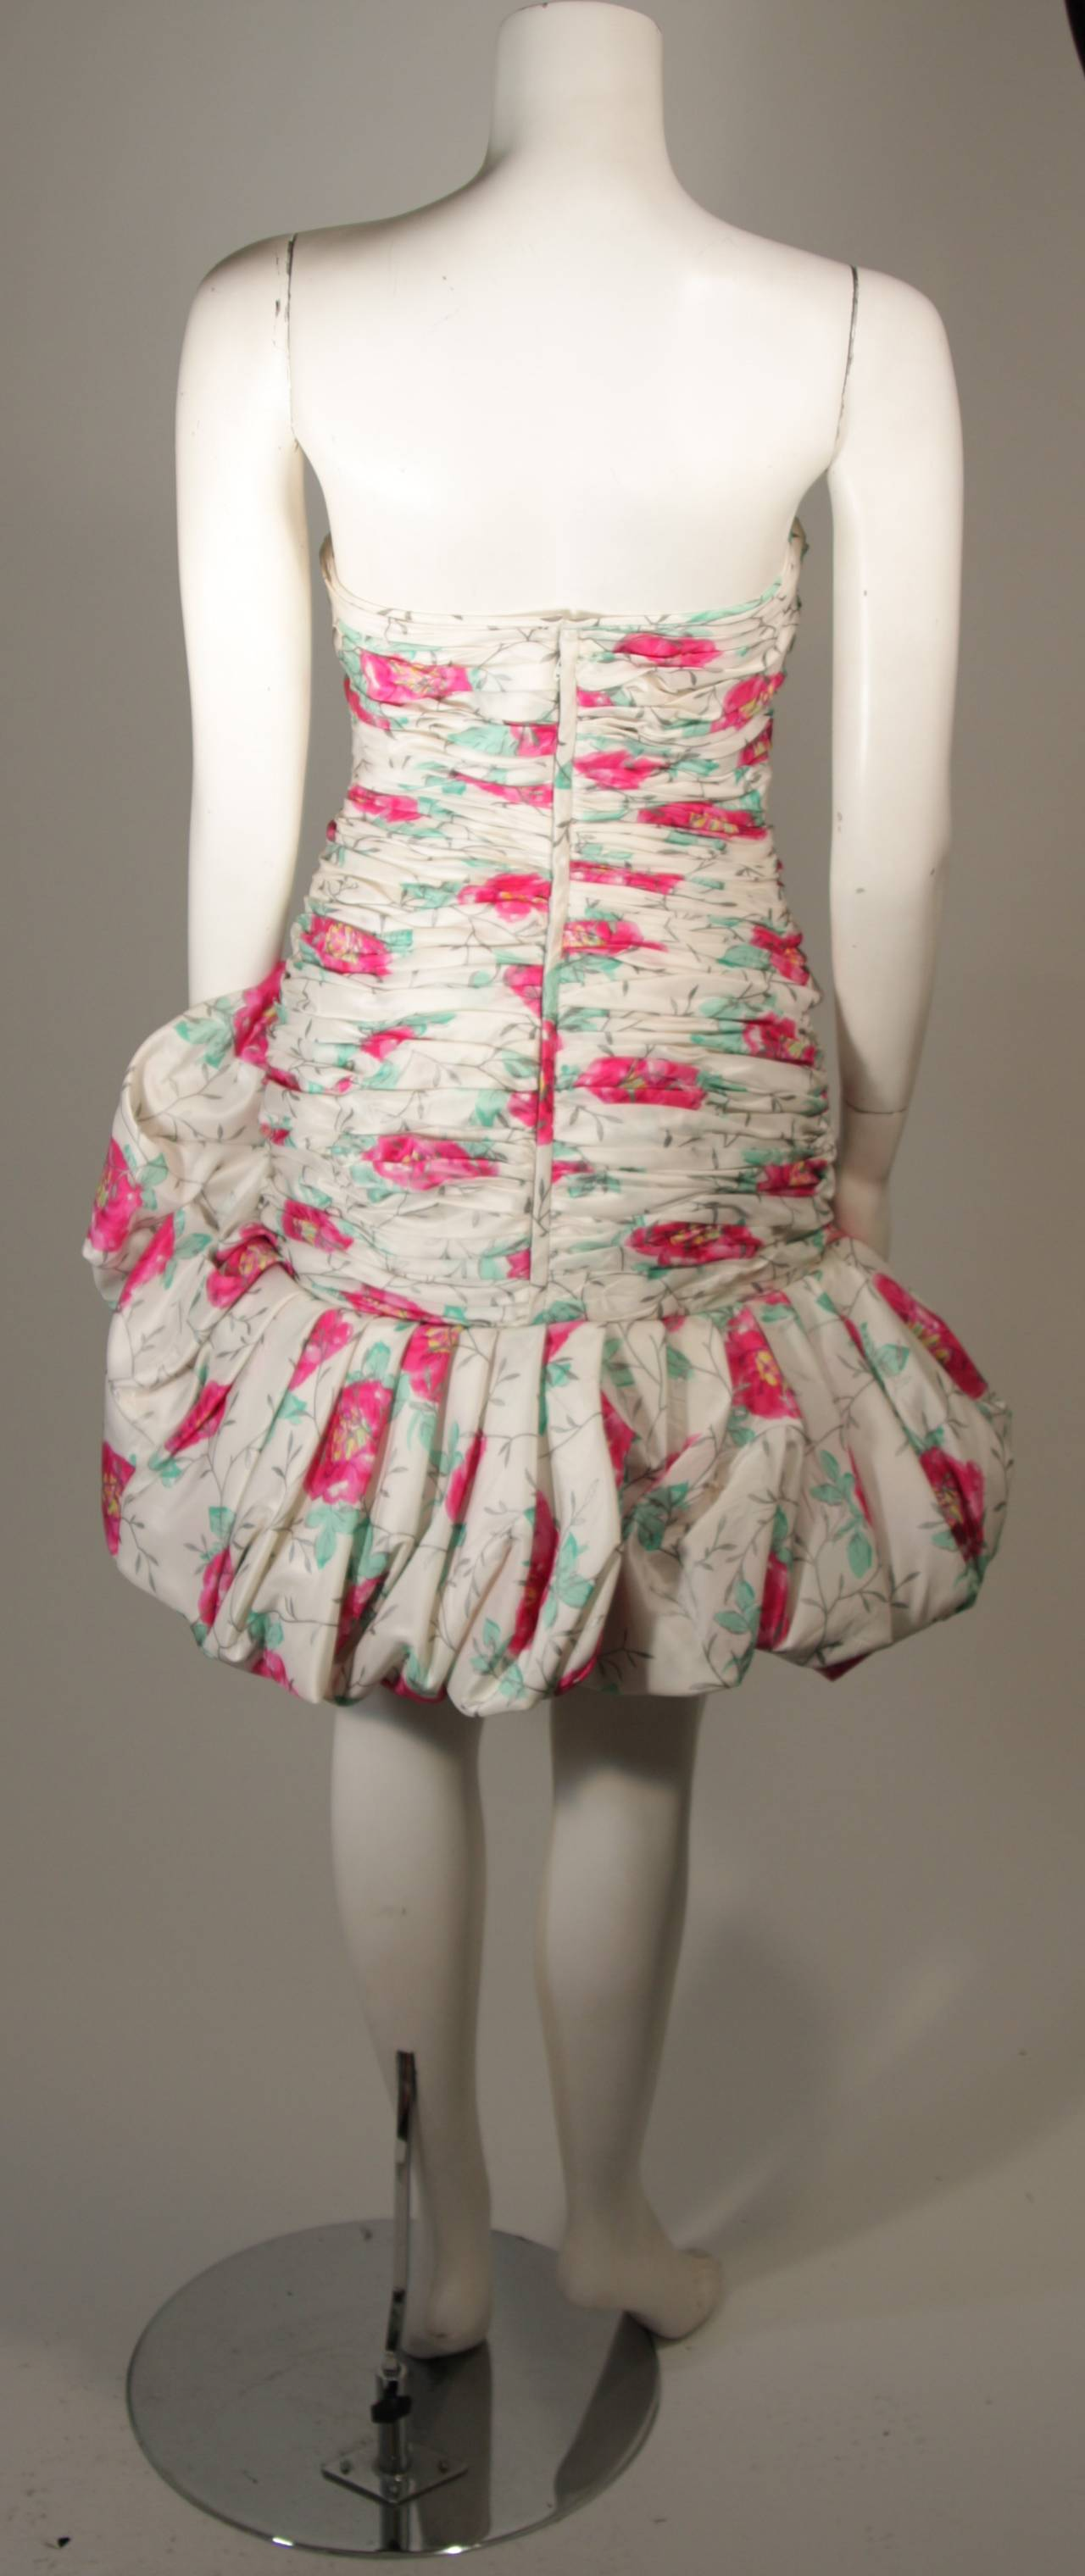 Ungaro White Silk Cocktail Dress with Pink & Green Floral Design Size 8 For Sale 3